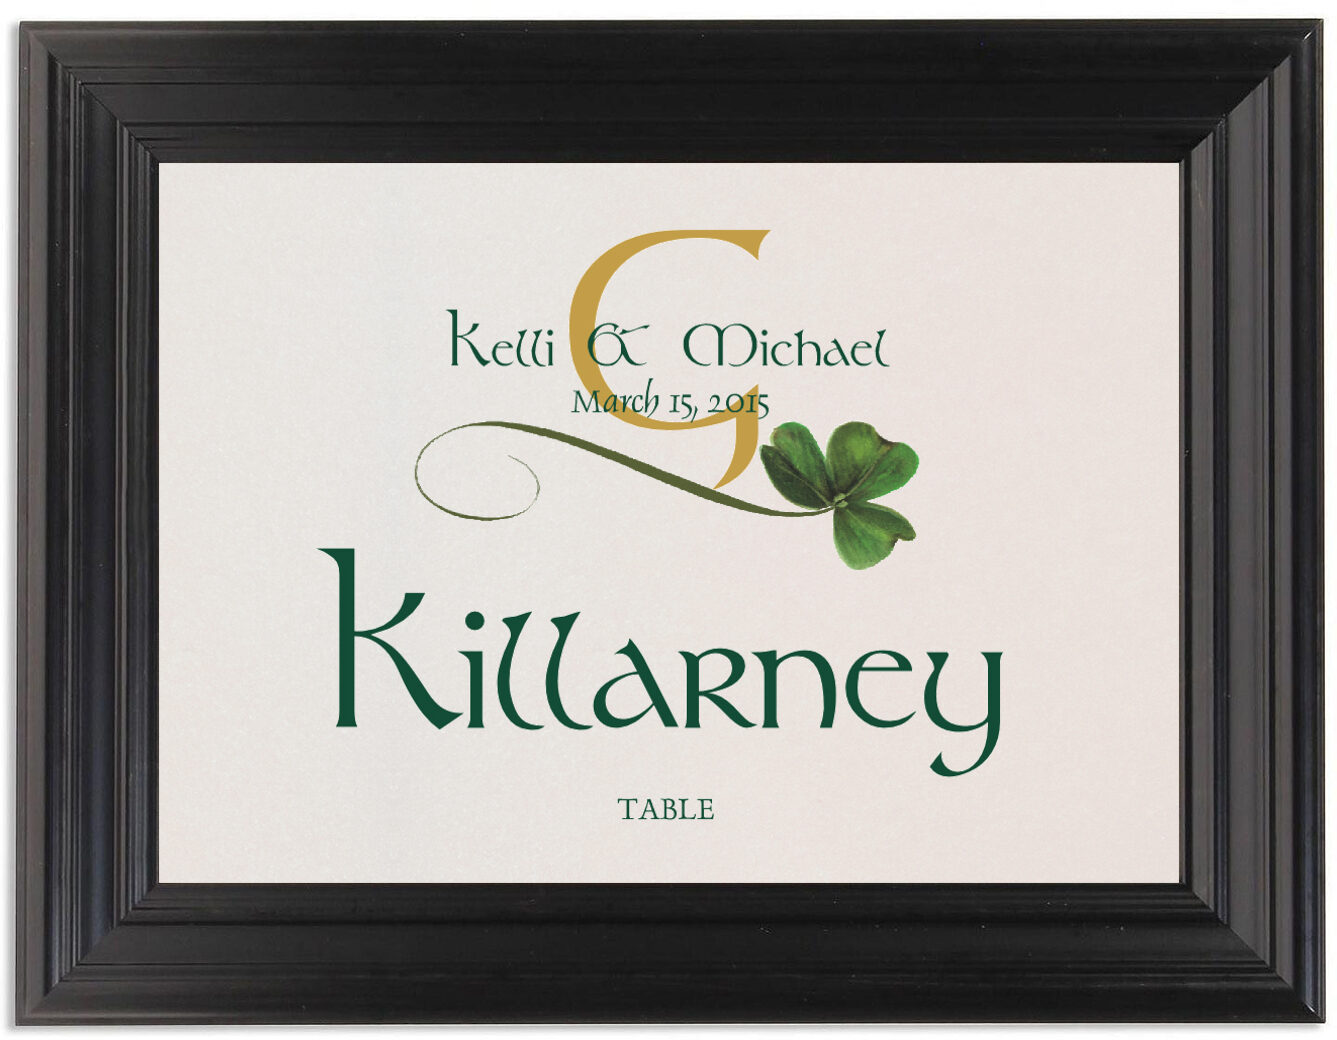 Framed Photograph of Wispy Shamrock Table Names